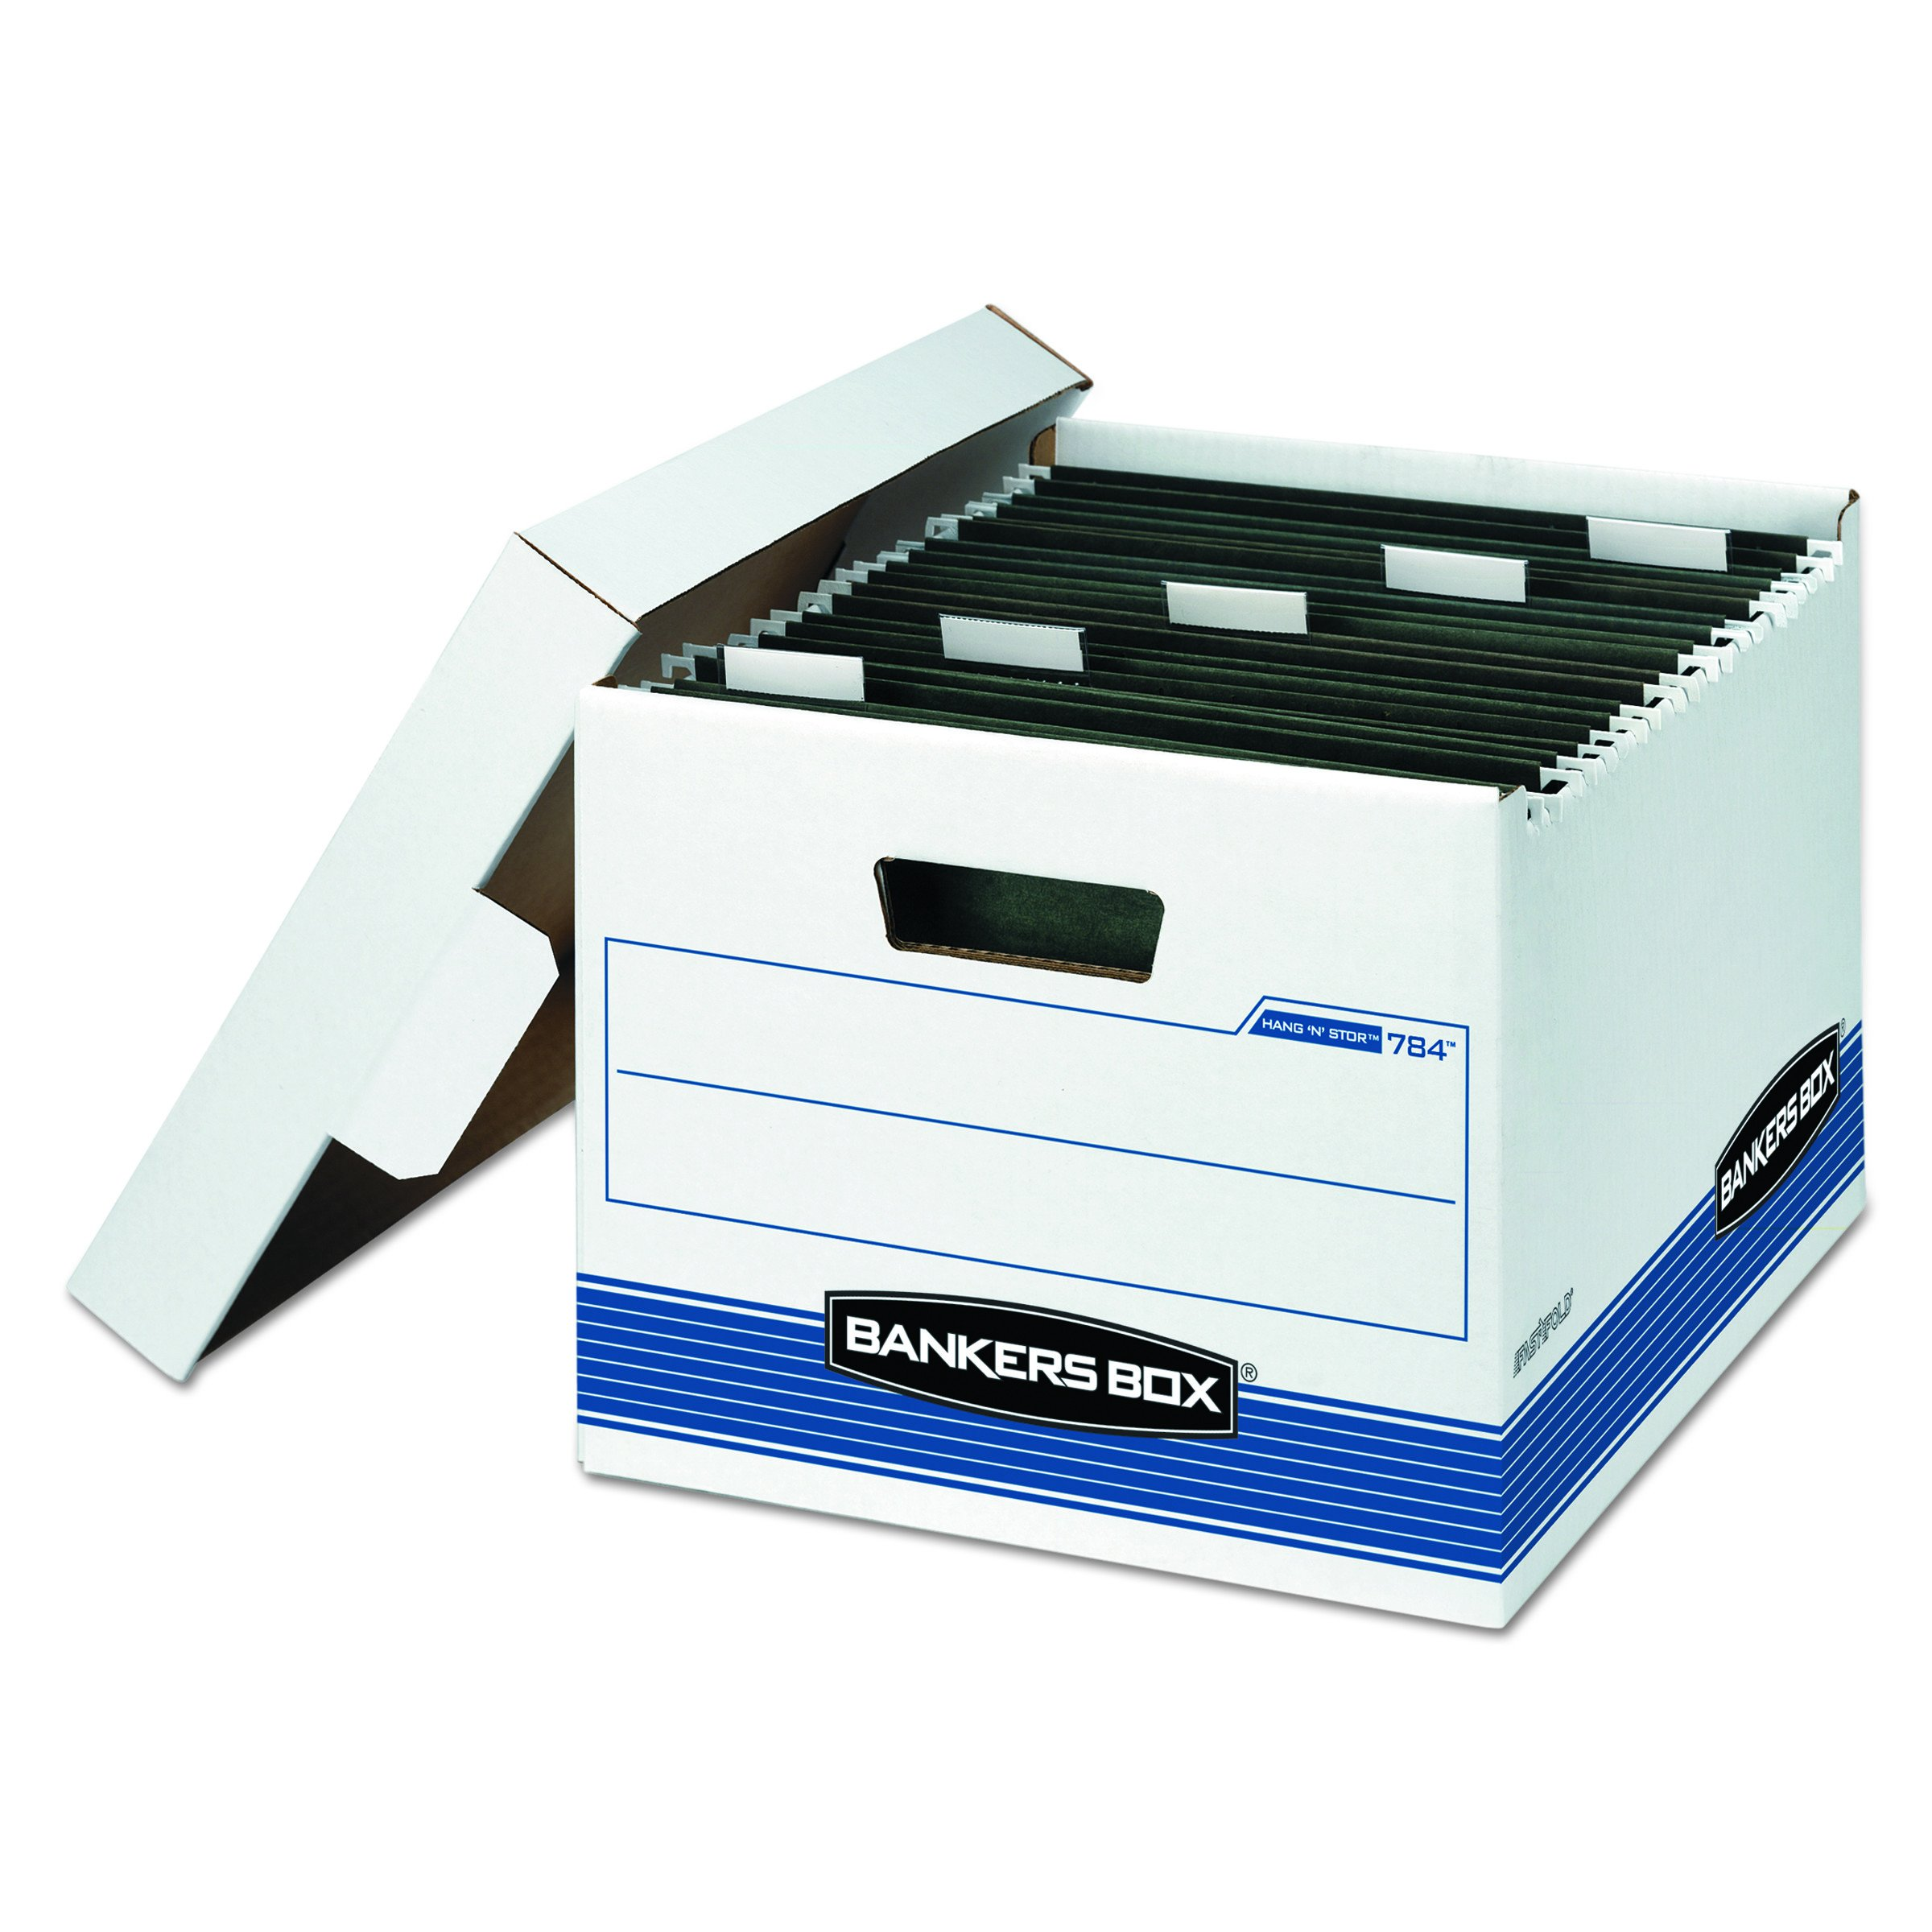 Bankers Box 00784 HANG'N'STOR Storage Box, Letter, Lift-off Lid, White/Blue (Case of 4)